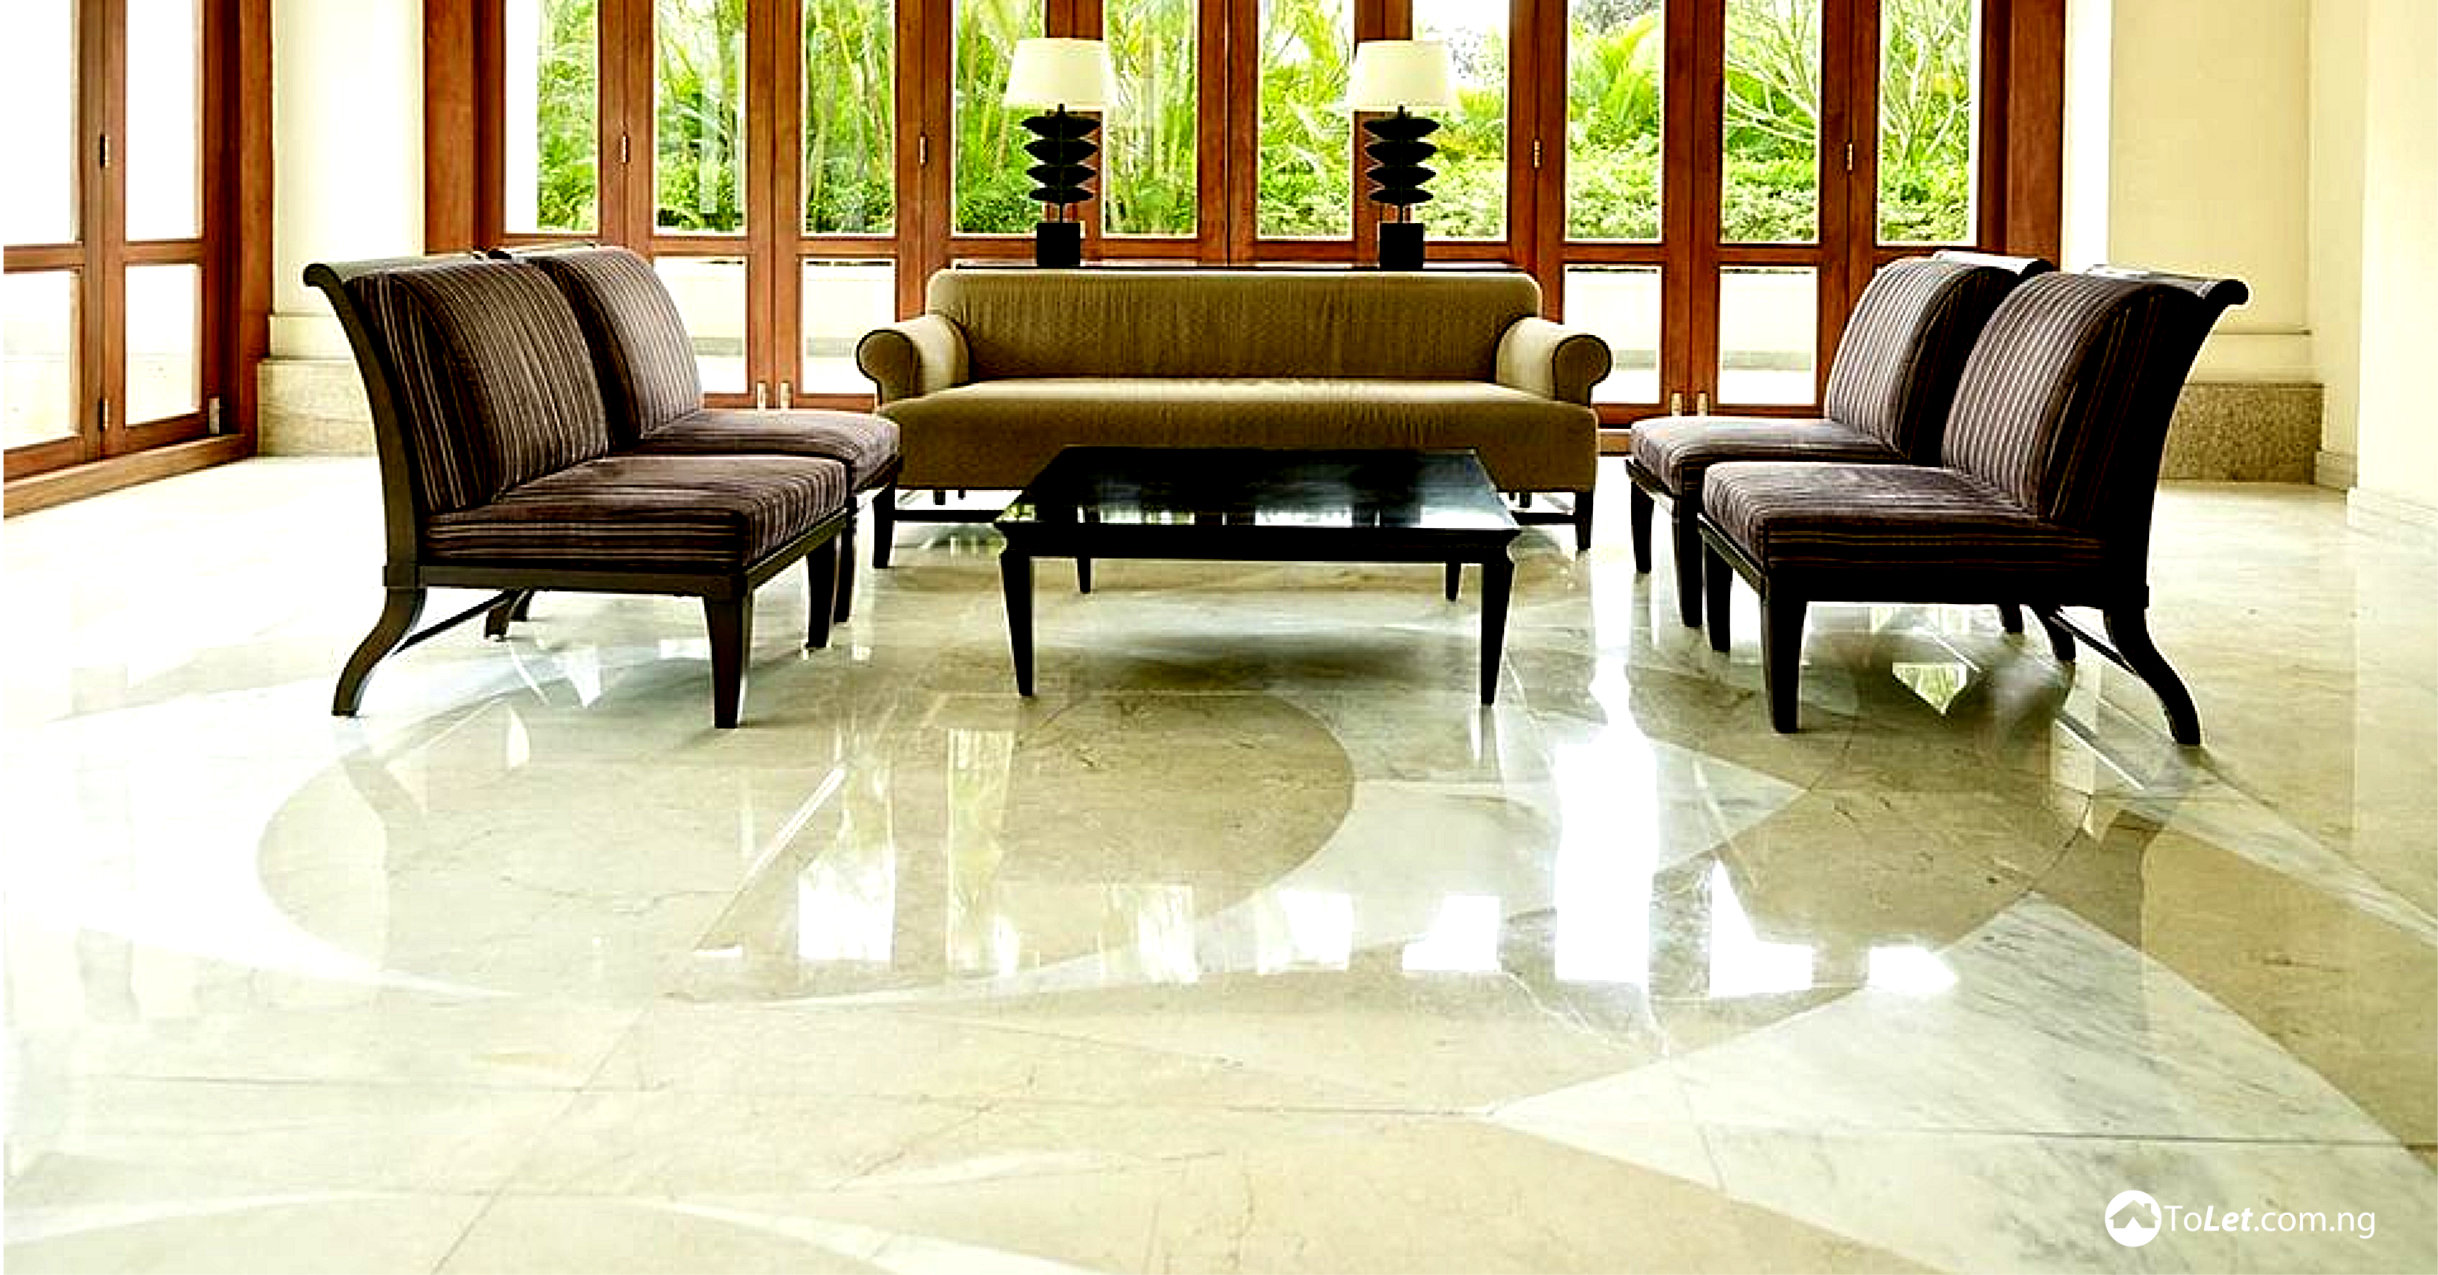 Cost of marble tiles tolet insider before you choose marble tiles for your home dailygadgetfo Gallery